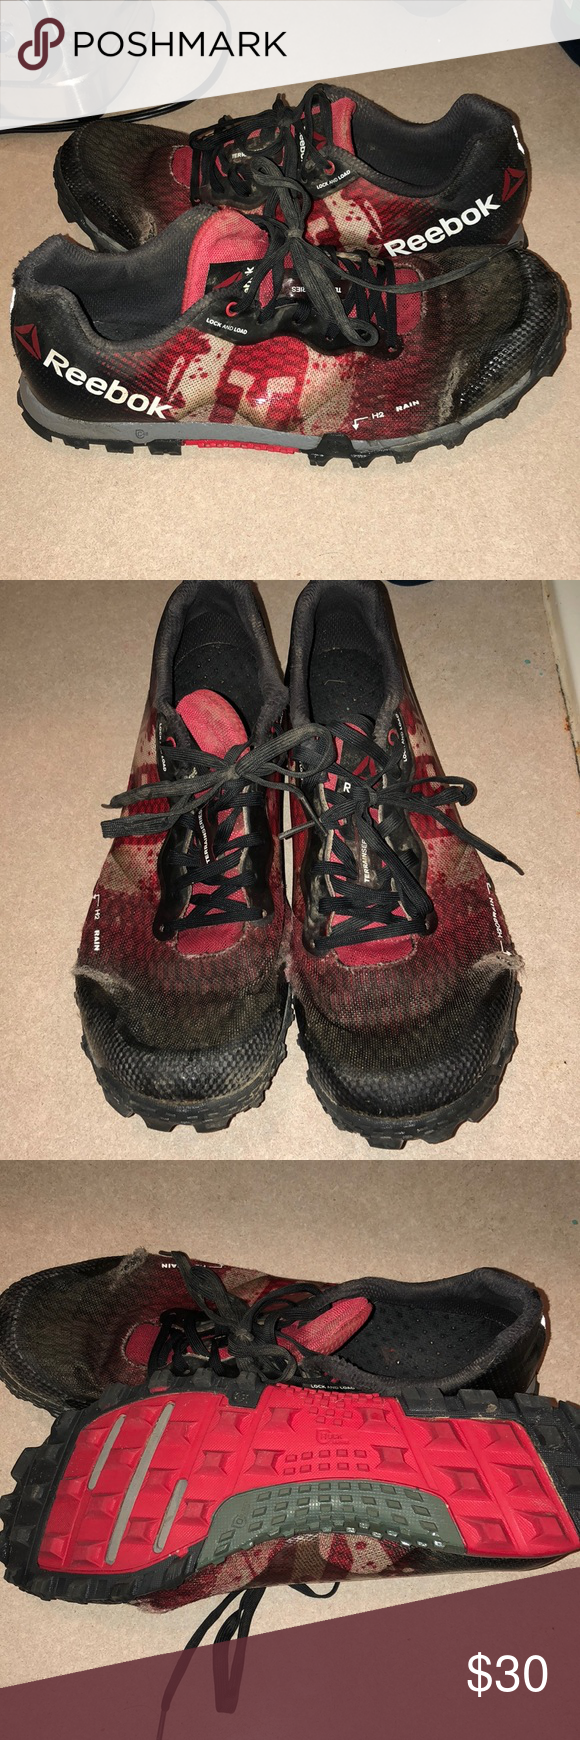 All Terrain Super Or | Reebok, Hiking boots, Boots